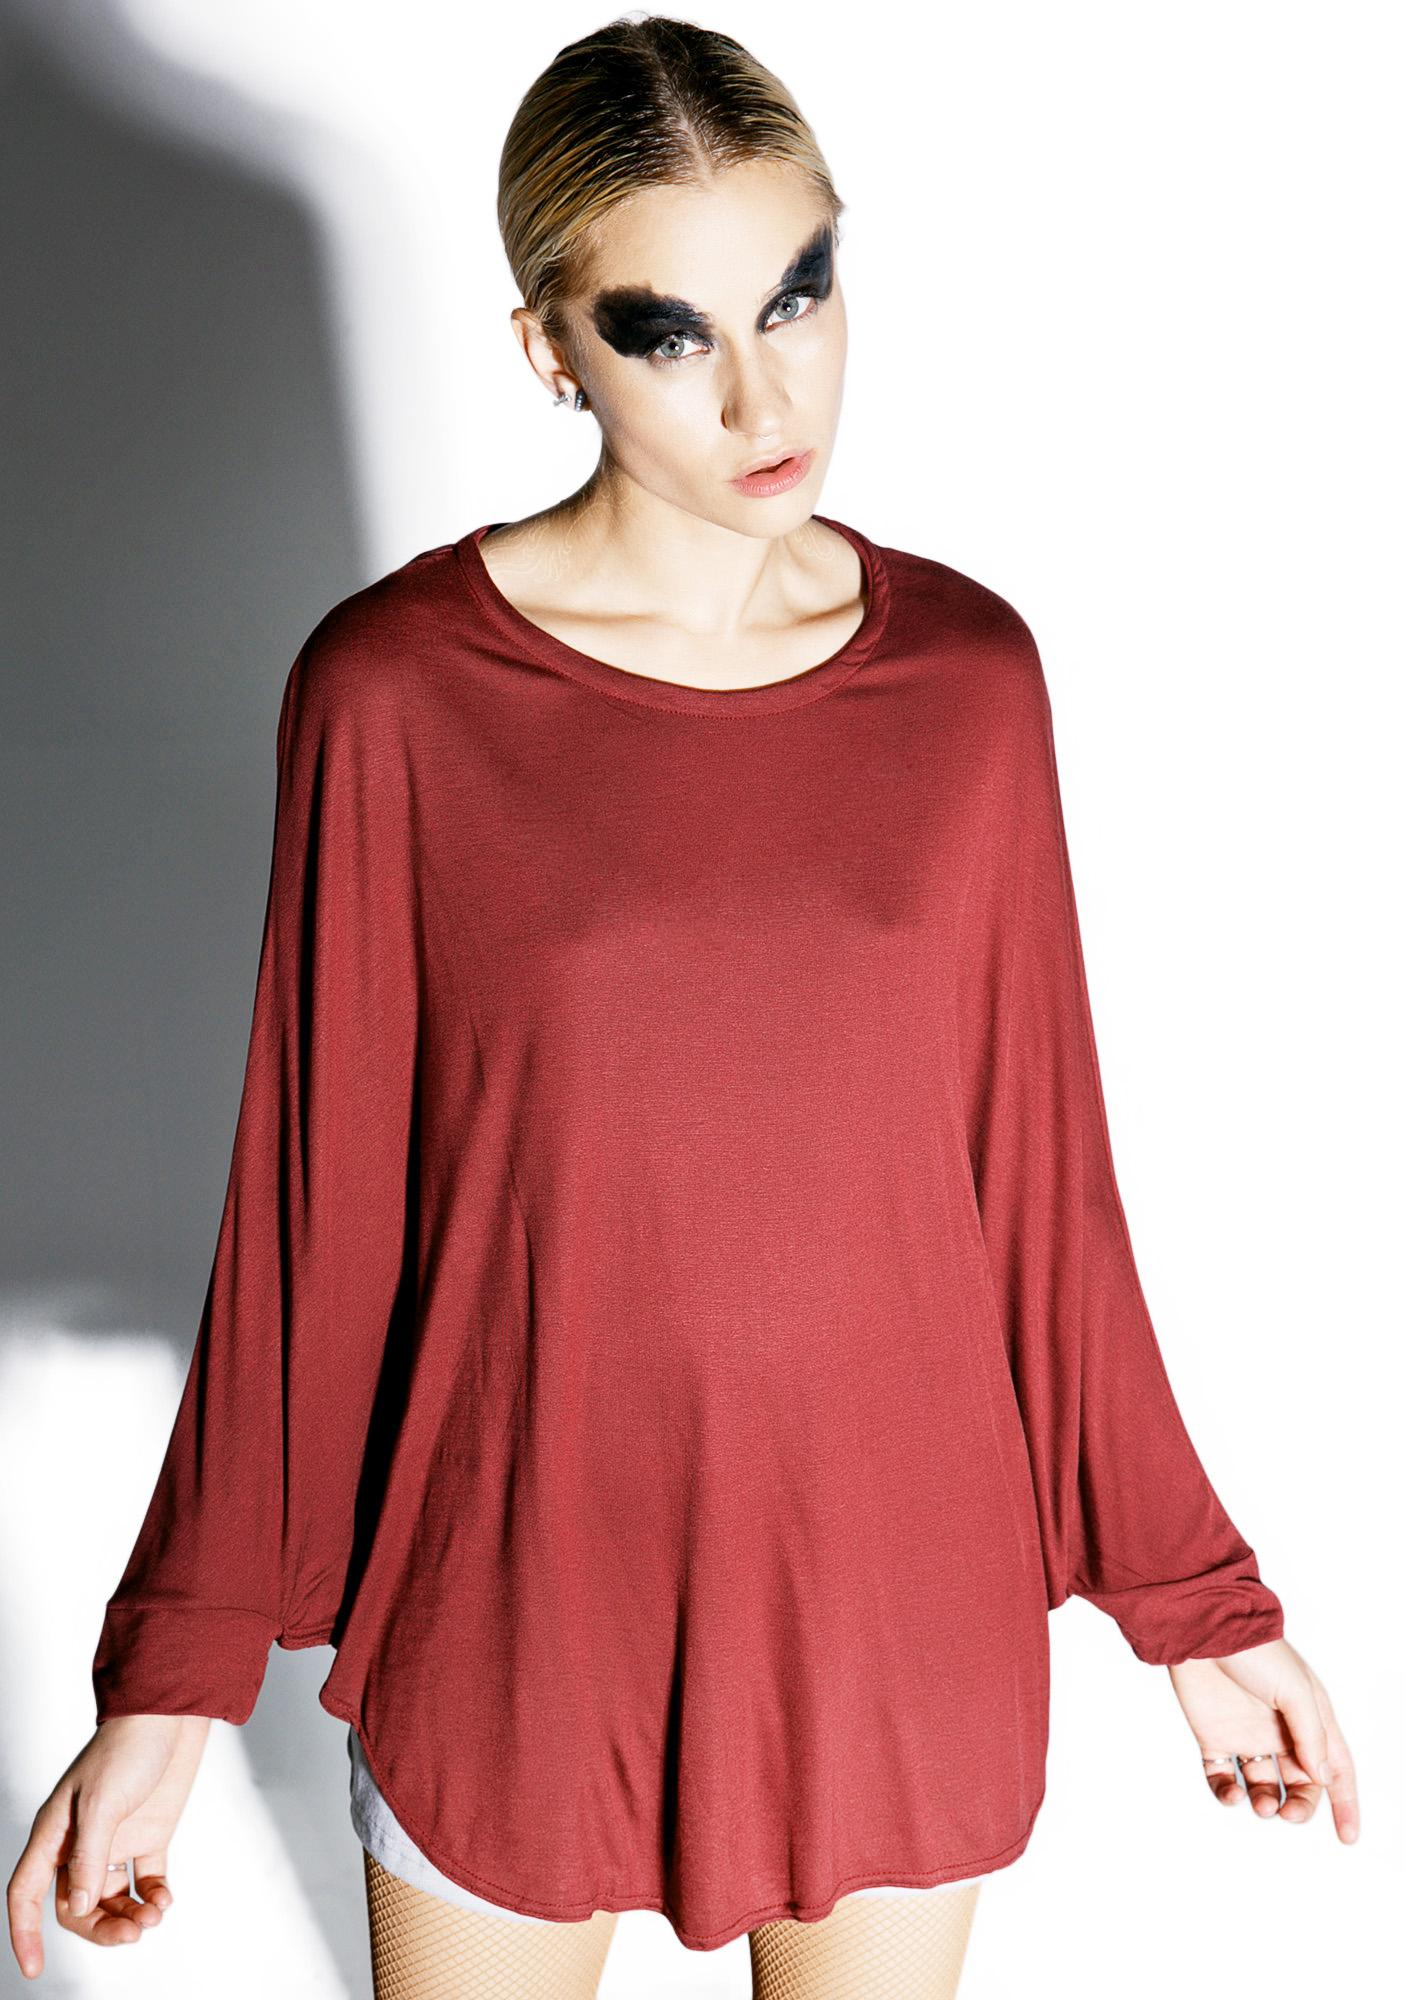 MNML Can't Tell Me Nothin' Crimson Batwing Top